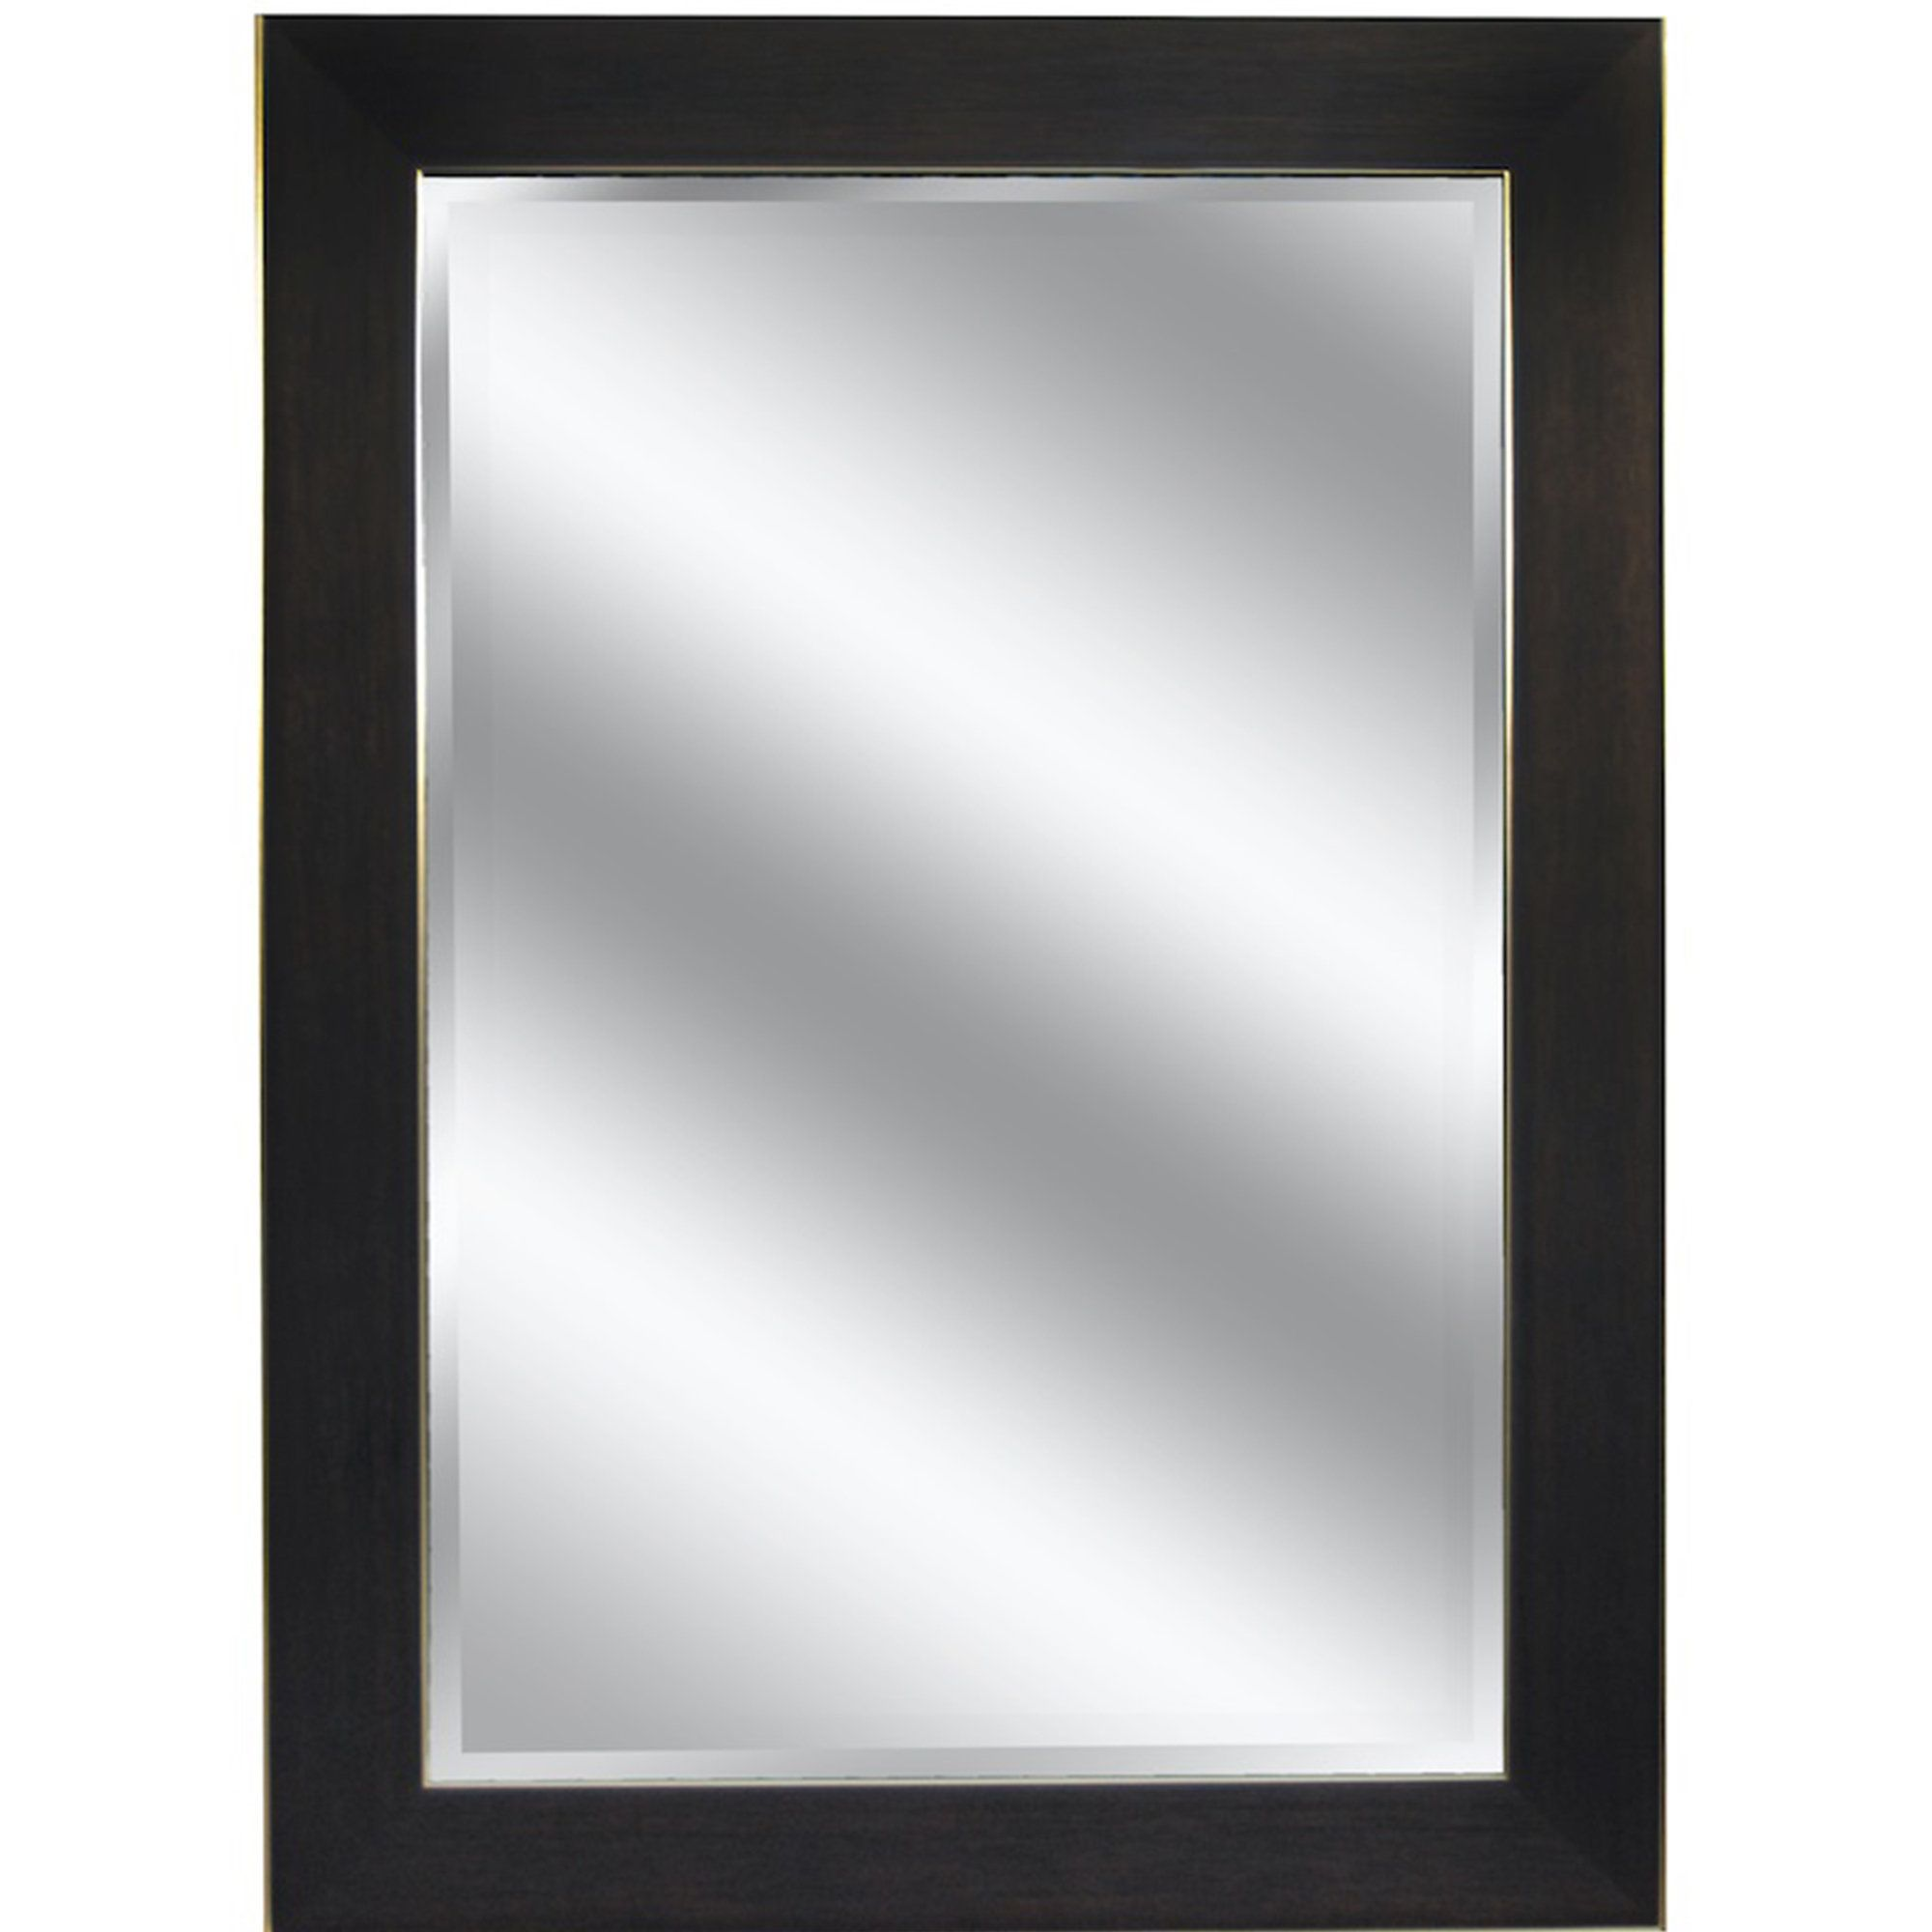 Mirror Dark Bronze with Wood Grain Color Frame Reflection 23x27 1 ...